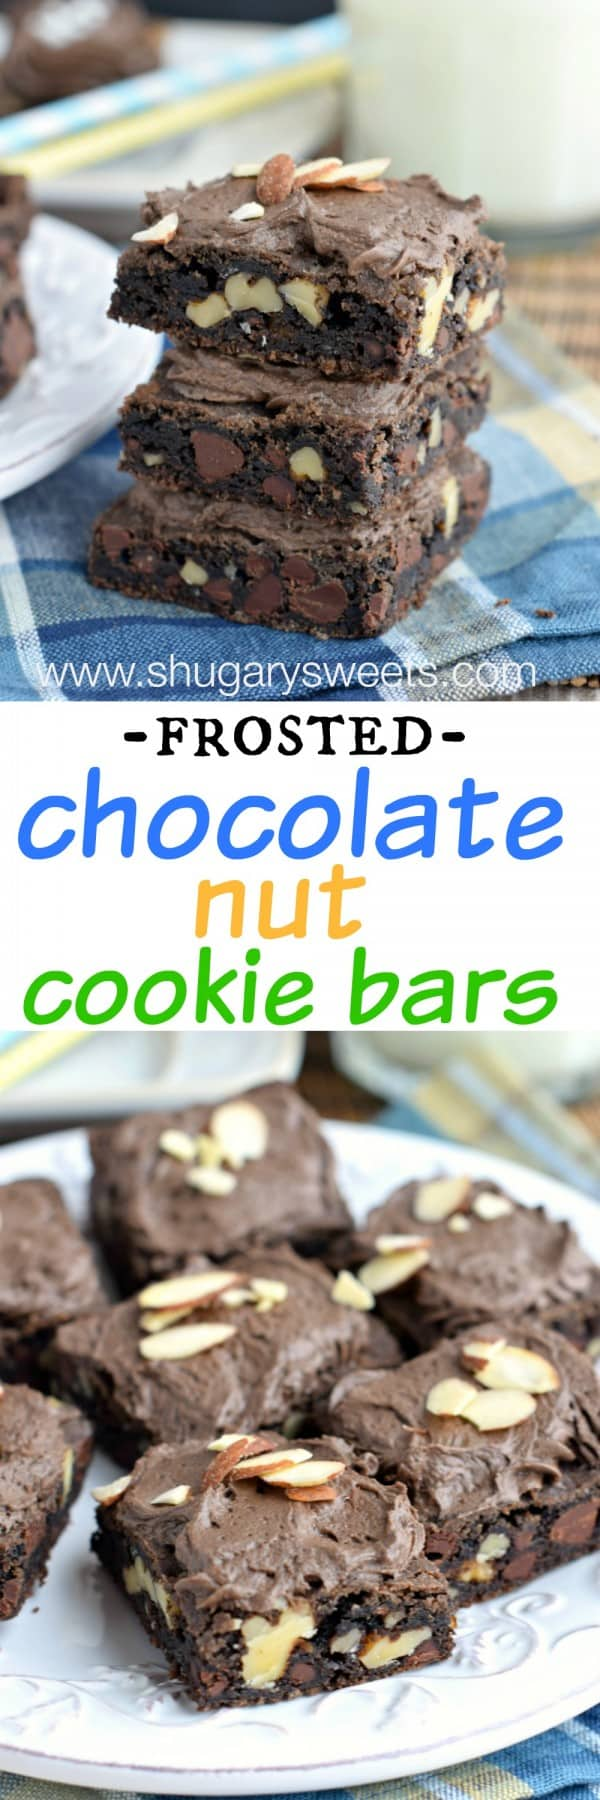 Frosted Chocolate Nut Cookie Bars: chewy chocolate bars filled with walnuts and almonds topped with a fluffy chocolate almond frosting! #thinkfisher